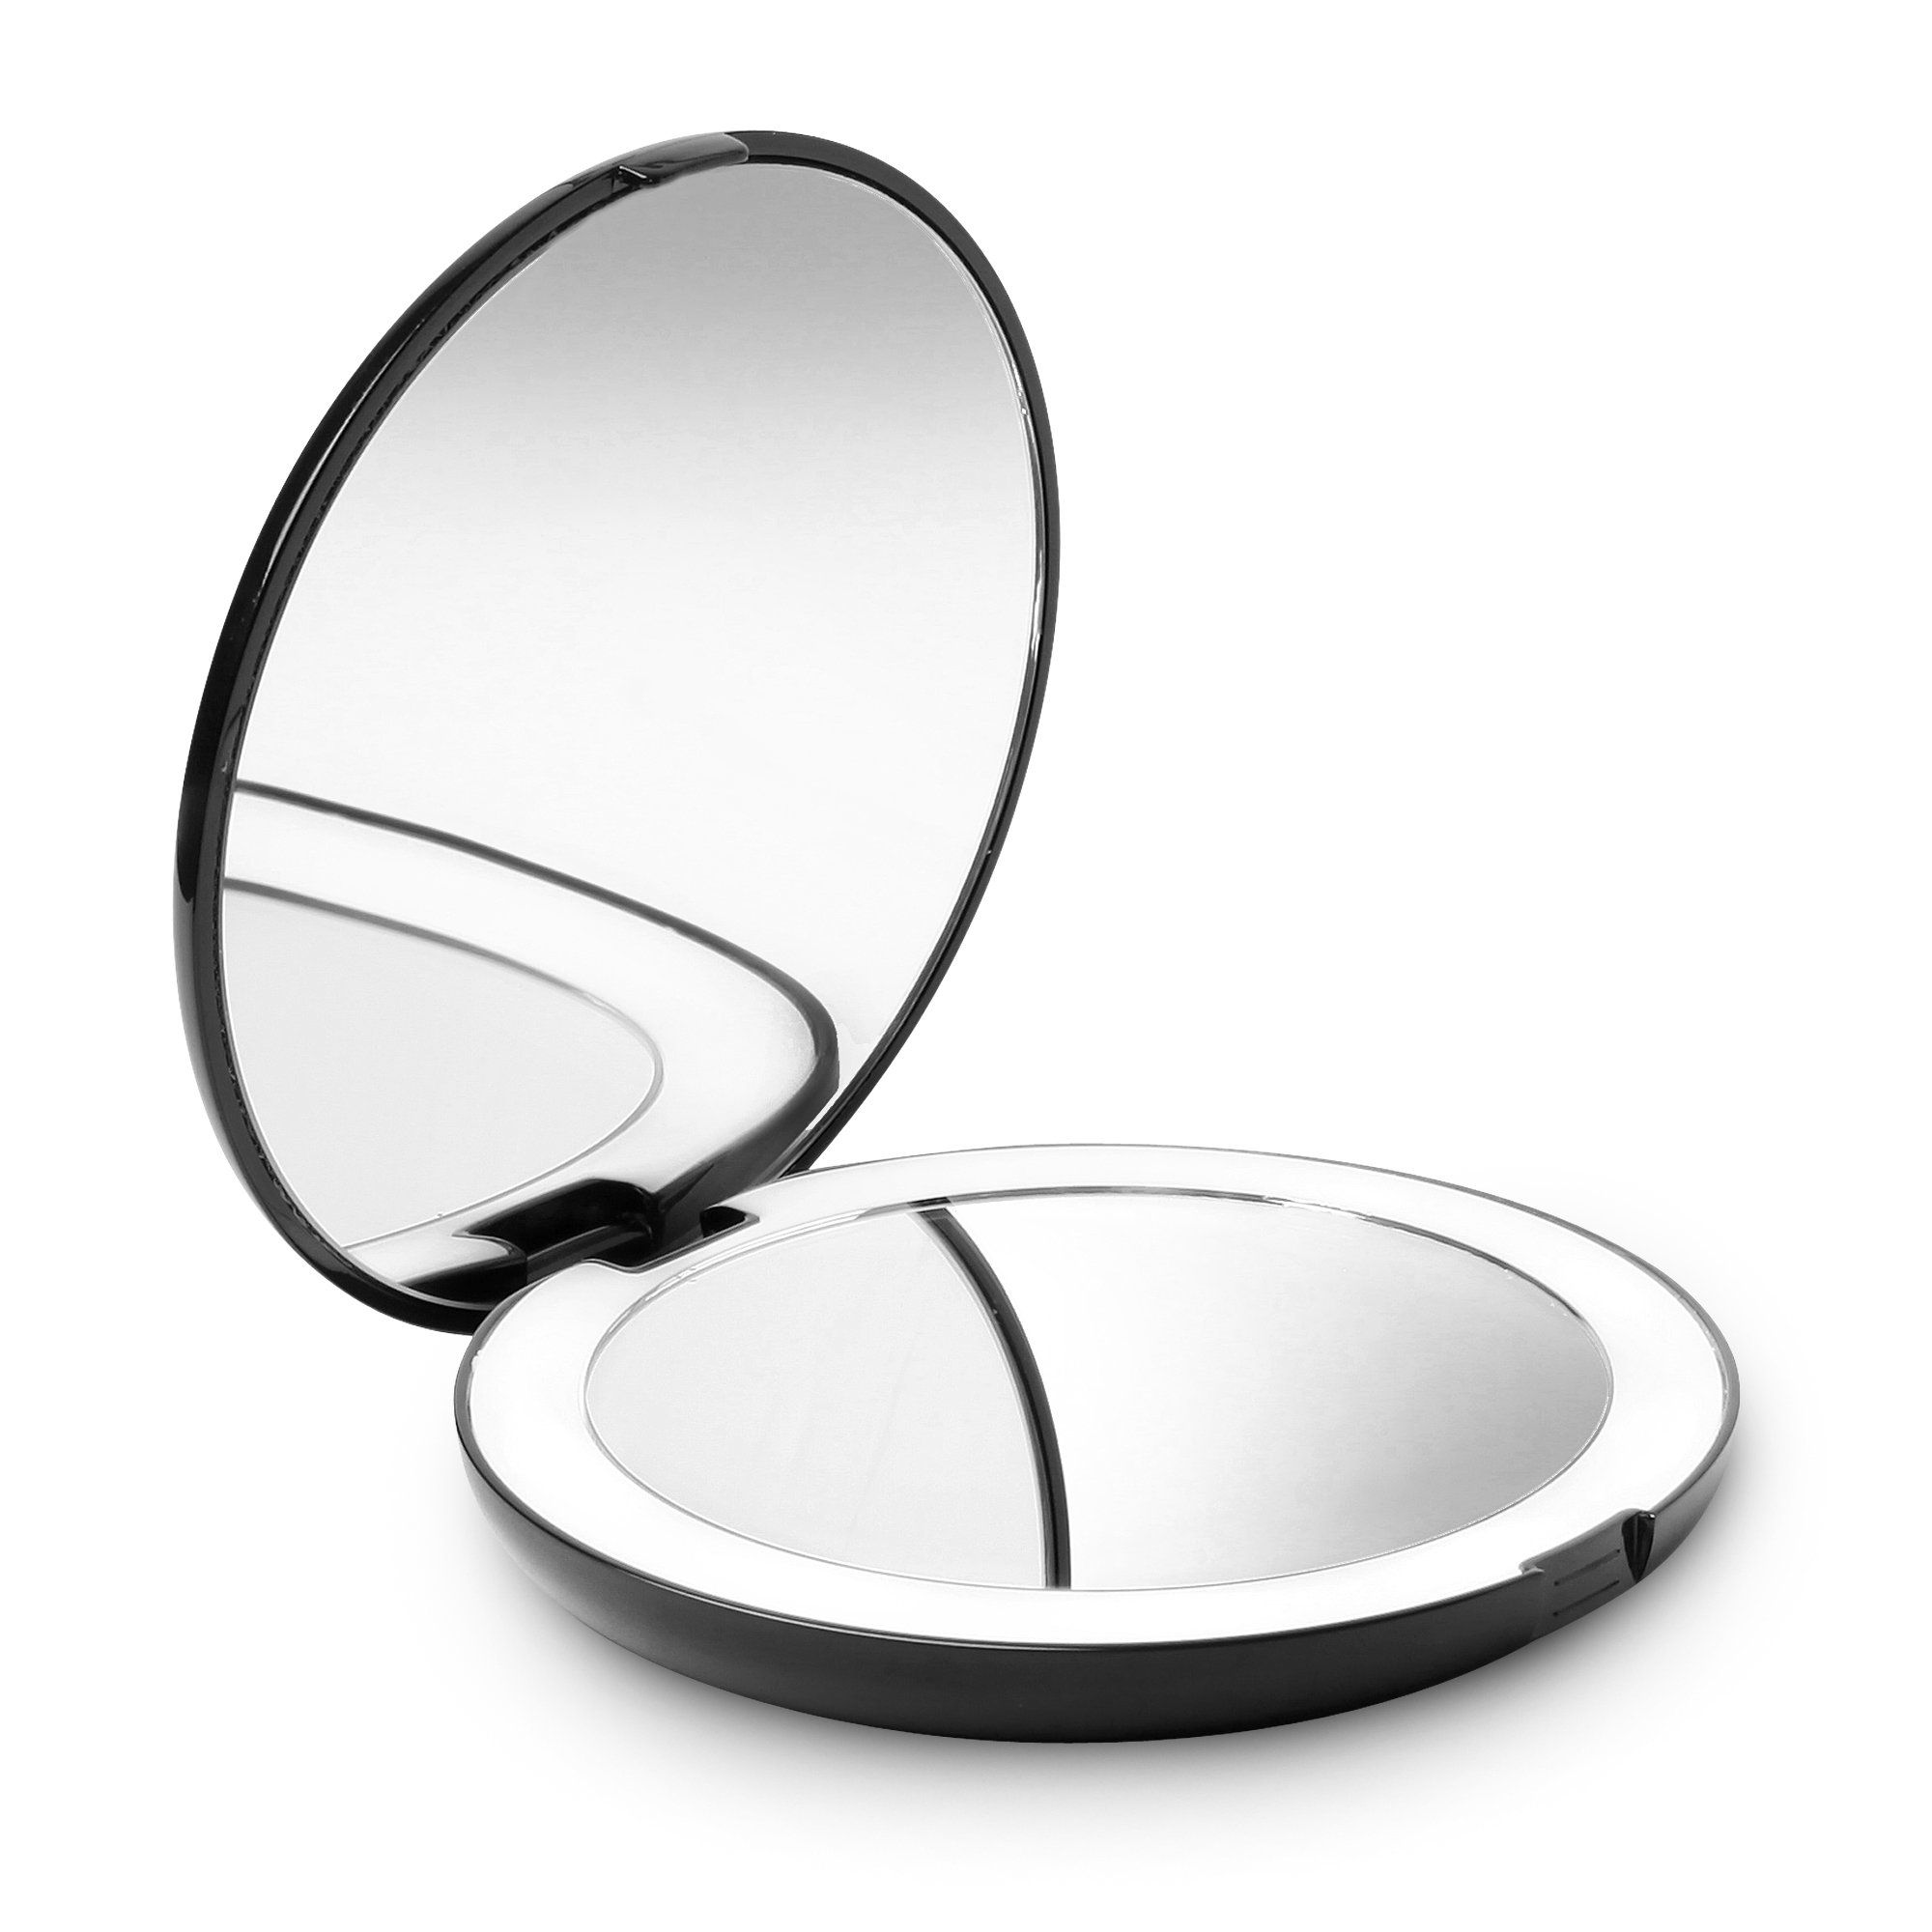 Fancii Led Lighted Travel Makeup Mirror 1x 10x Magnification